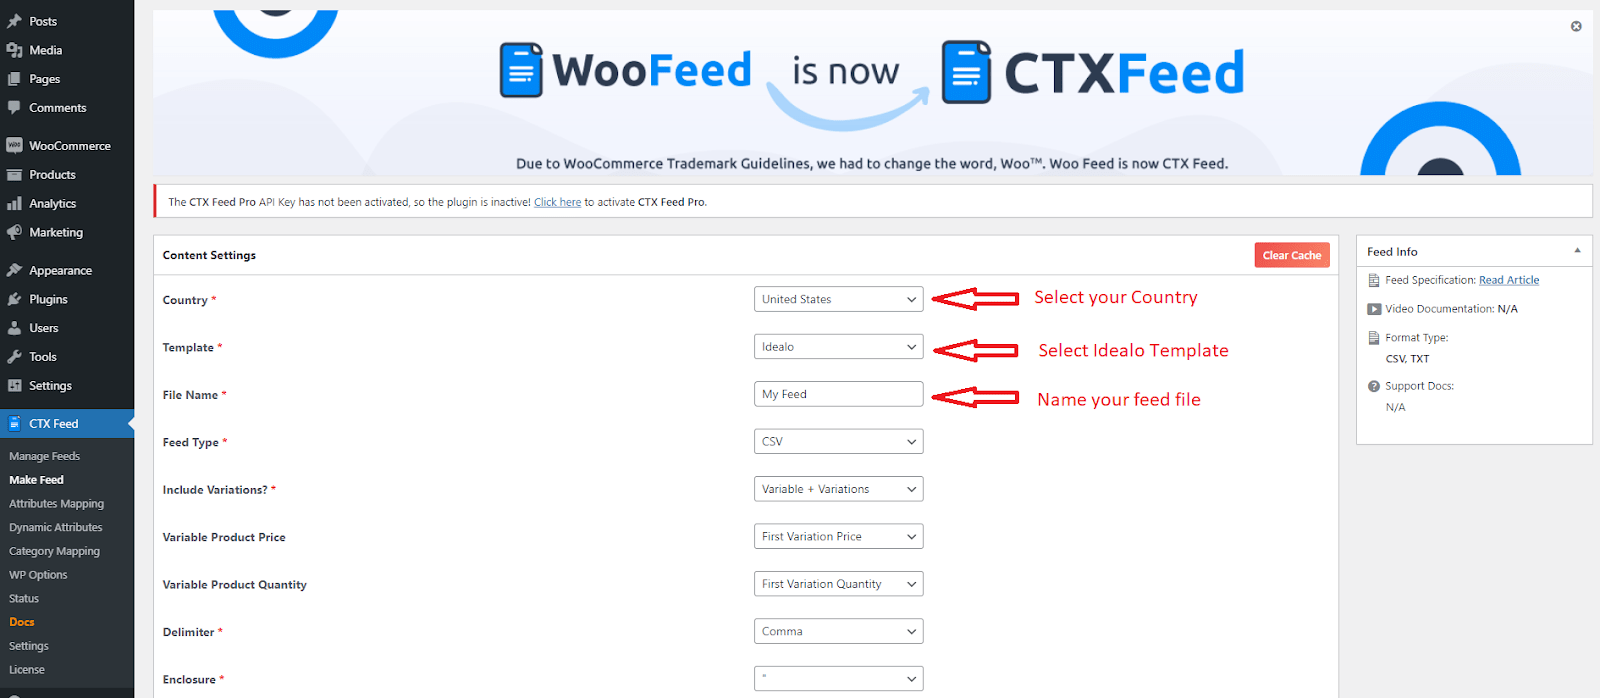 idealo template selection section in CTX Feed plugin